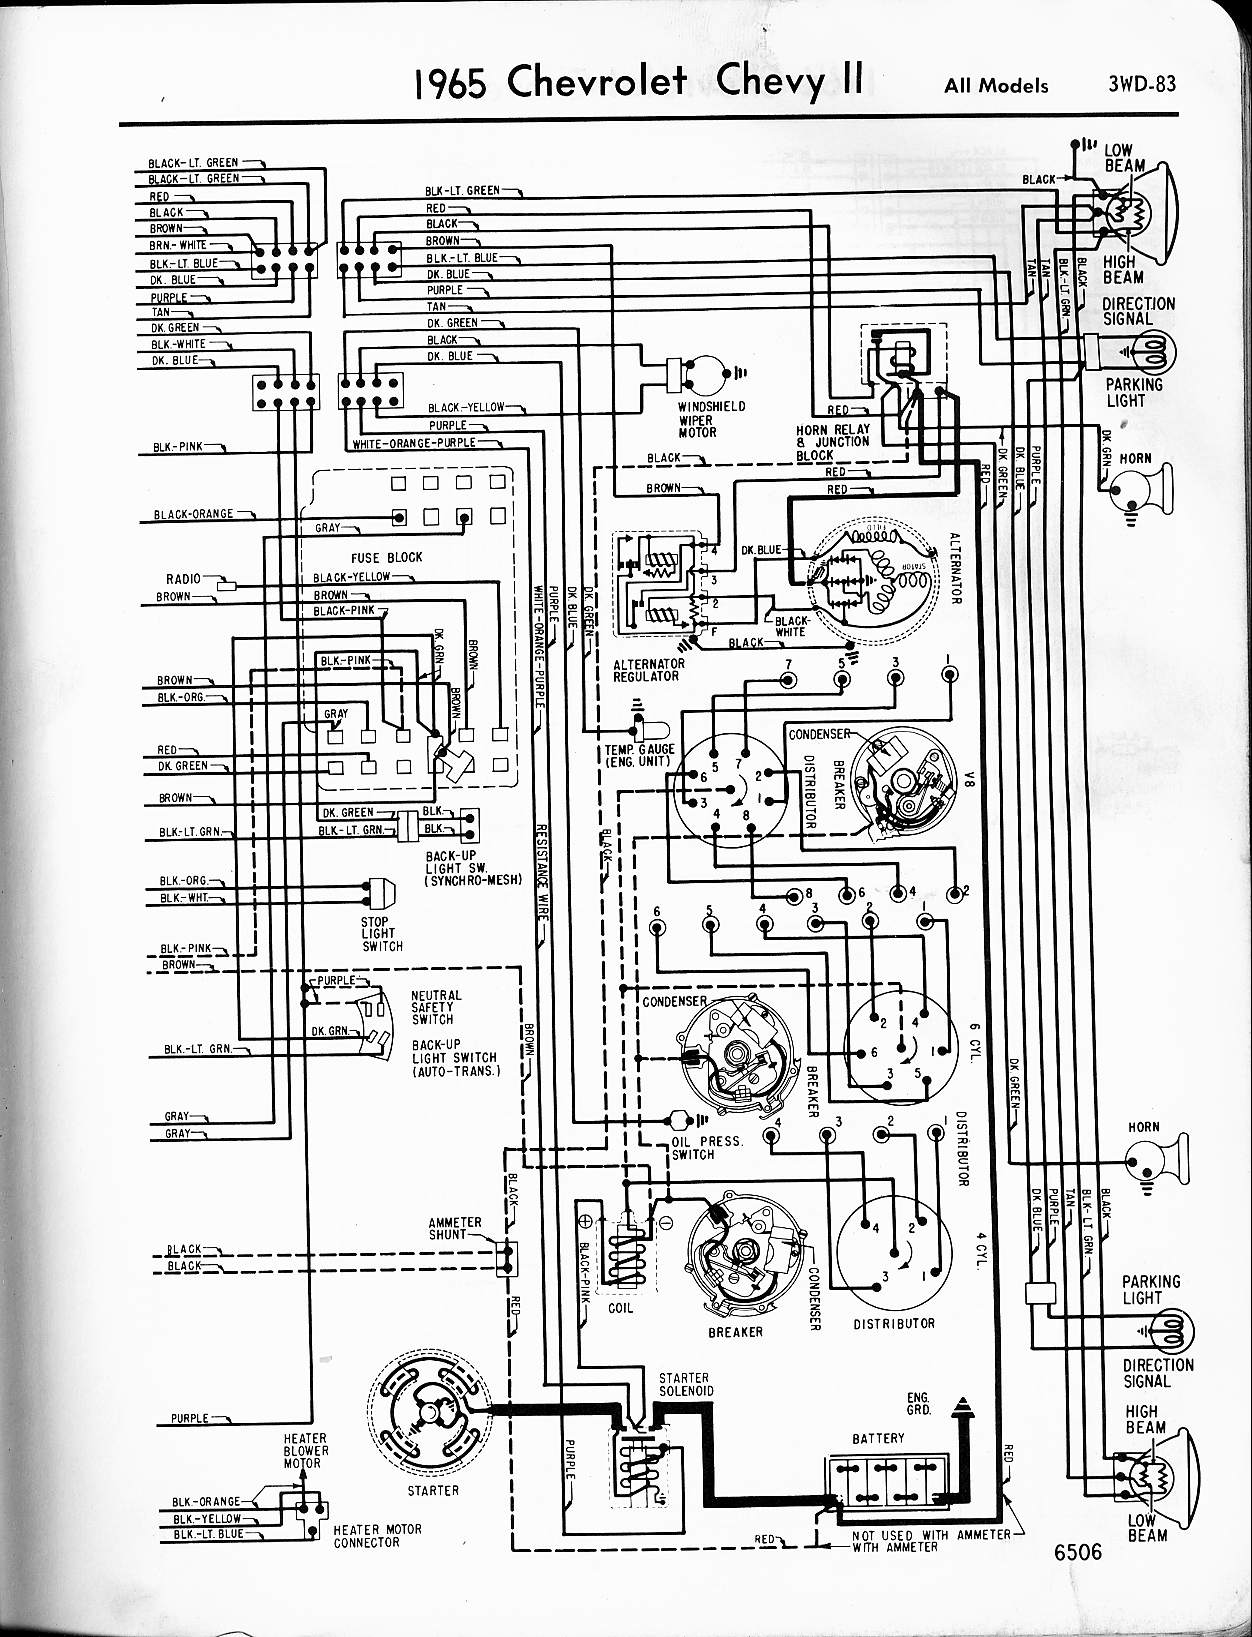 MWireChev65_3WD 083 69 nova wiring diagram 69 nova wiring diagram \u2022 wiring diagrams 1966 nova wiring diagram at eliteediting.co